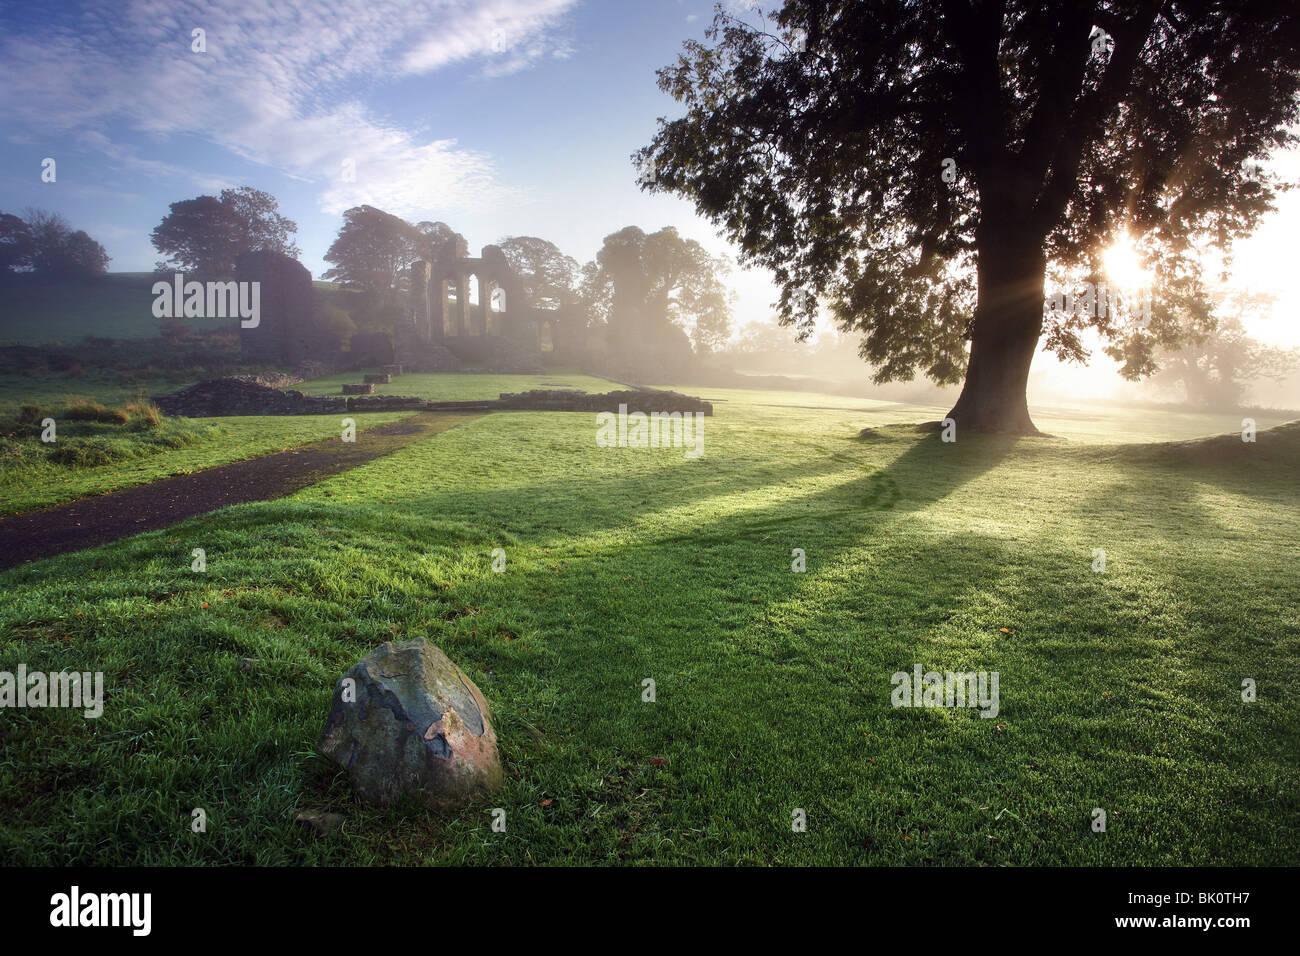 Inch Abbey, Downpatrick, Northern Ireland. - Stock Image